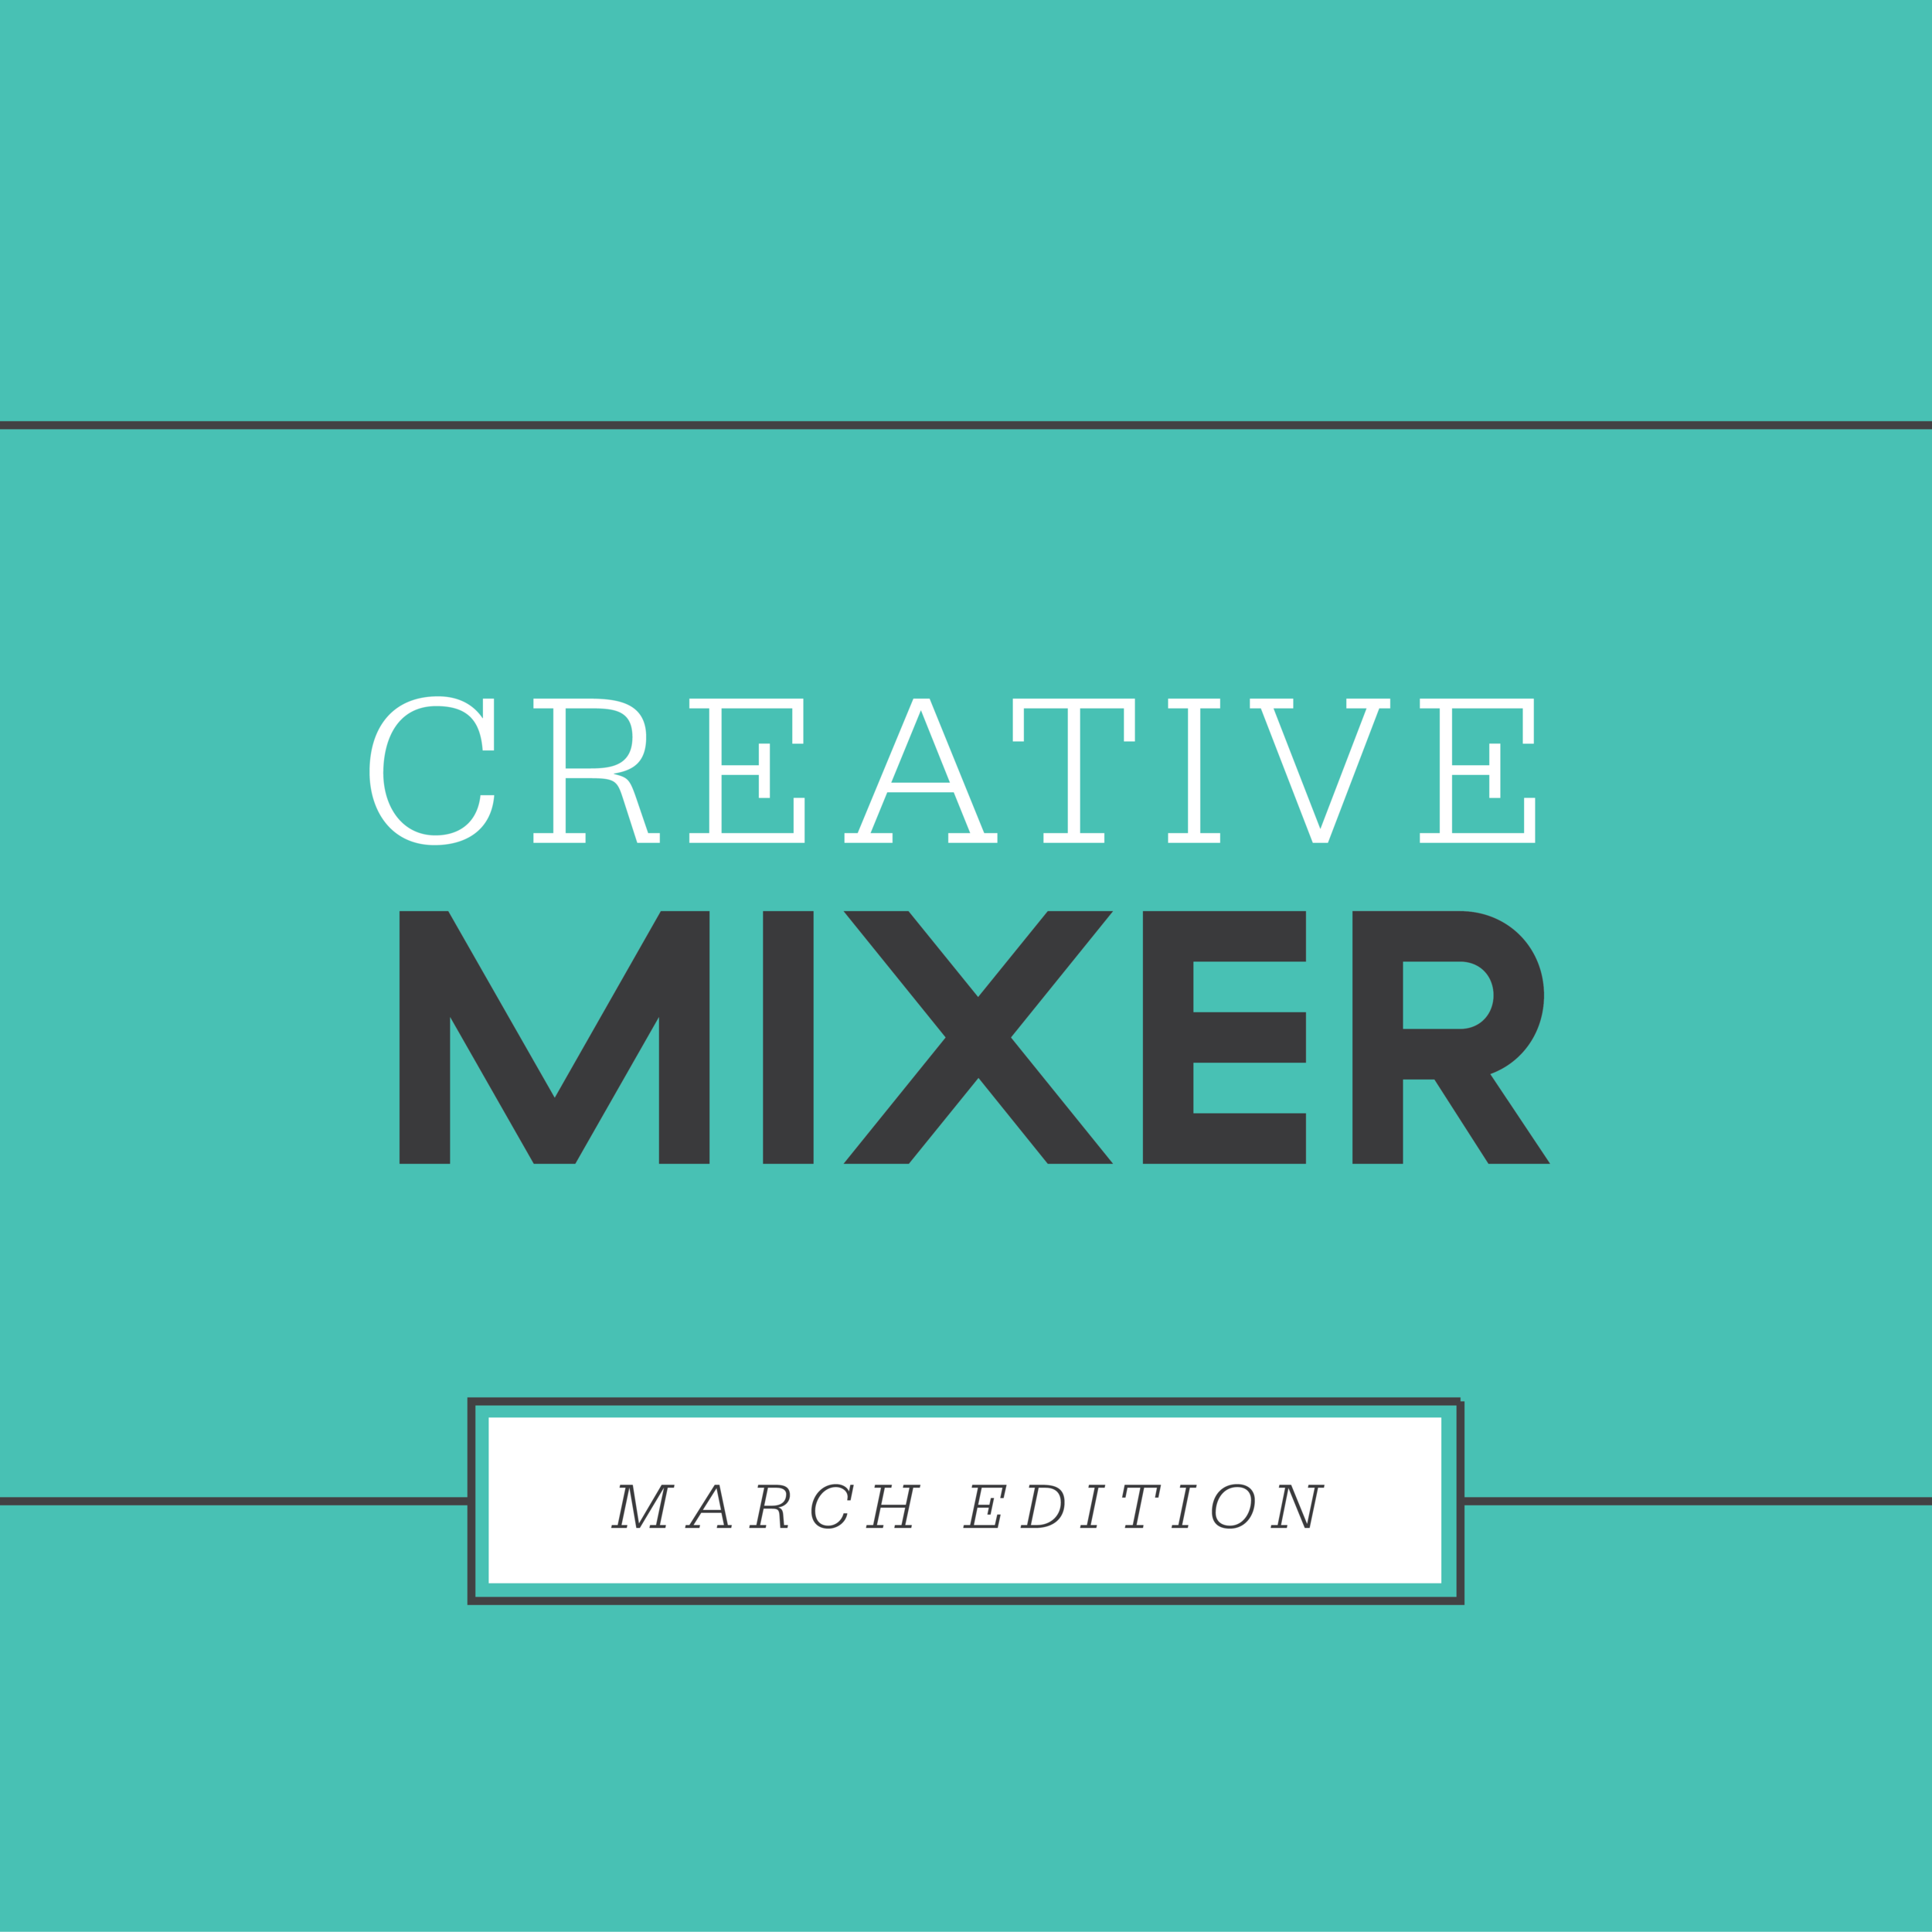 031419_AIGA_CreativeMixer_instagram-row2.png